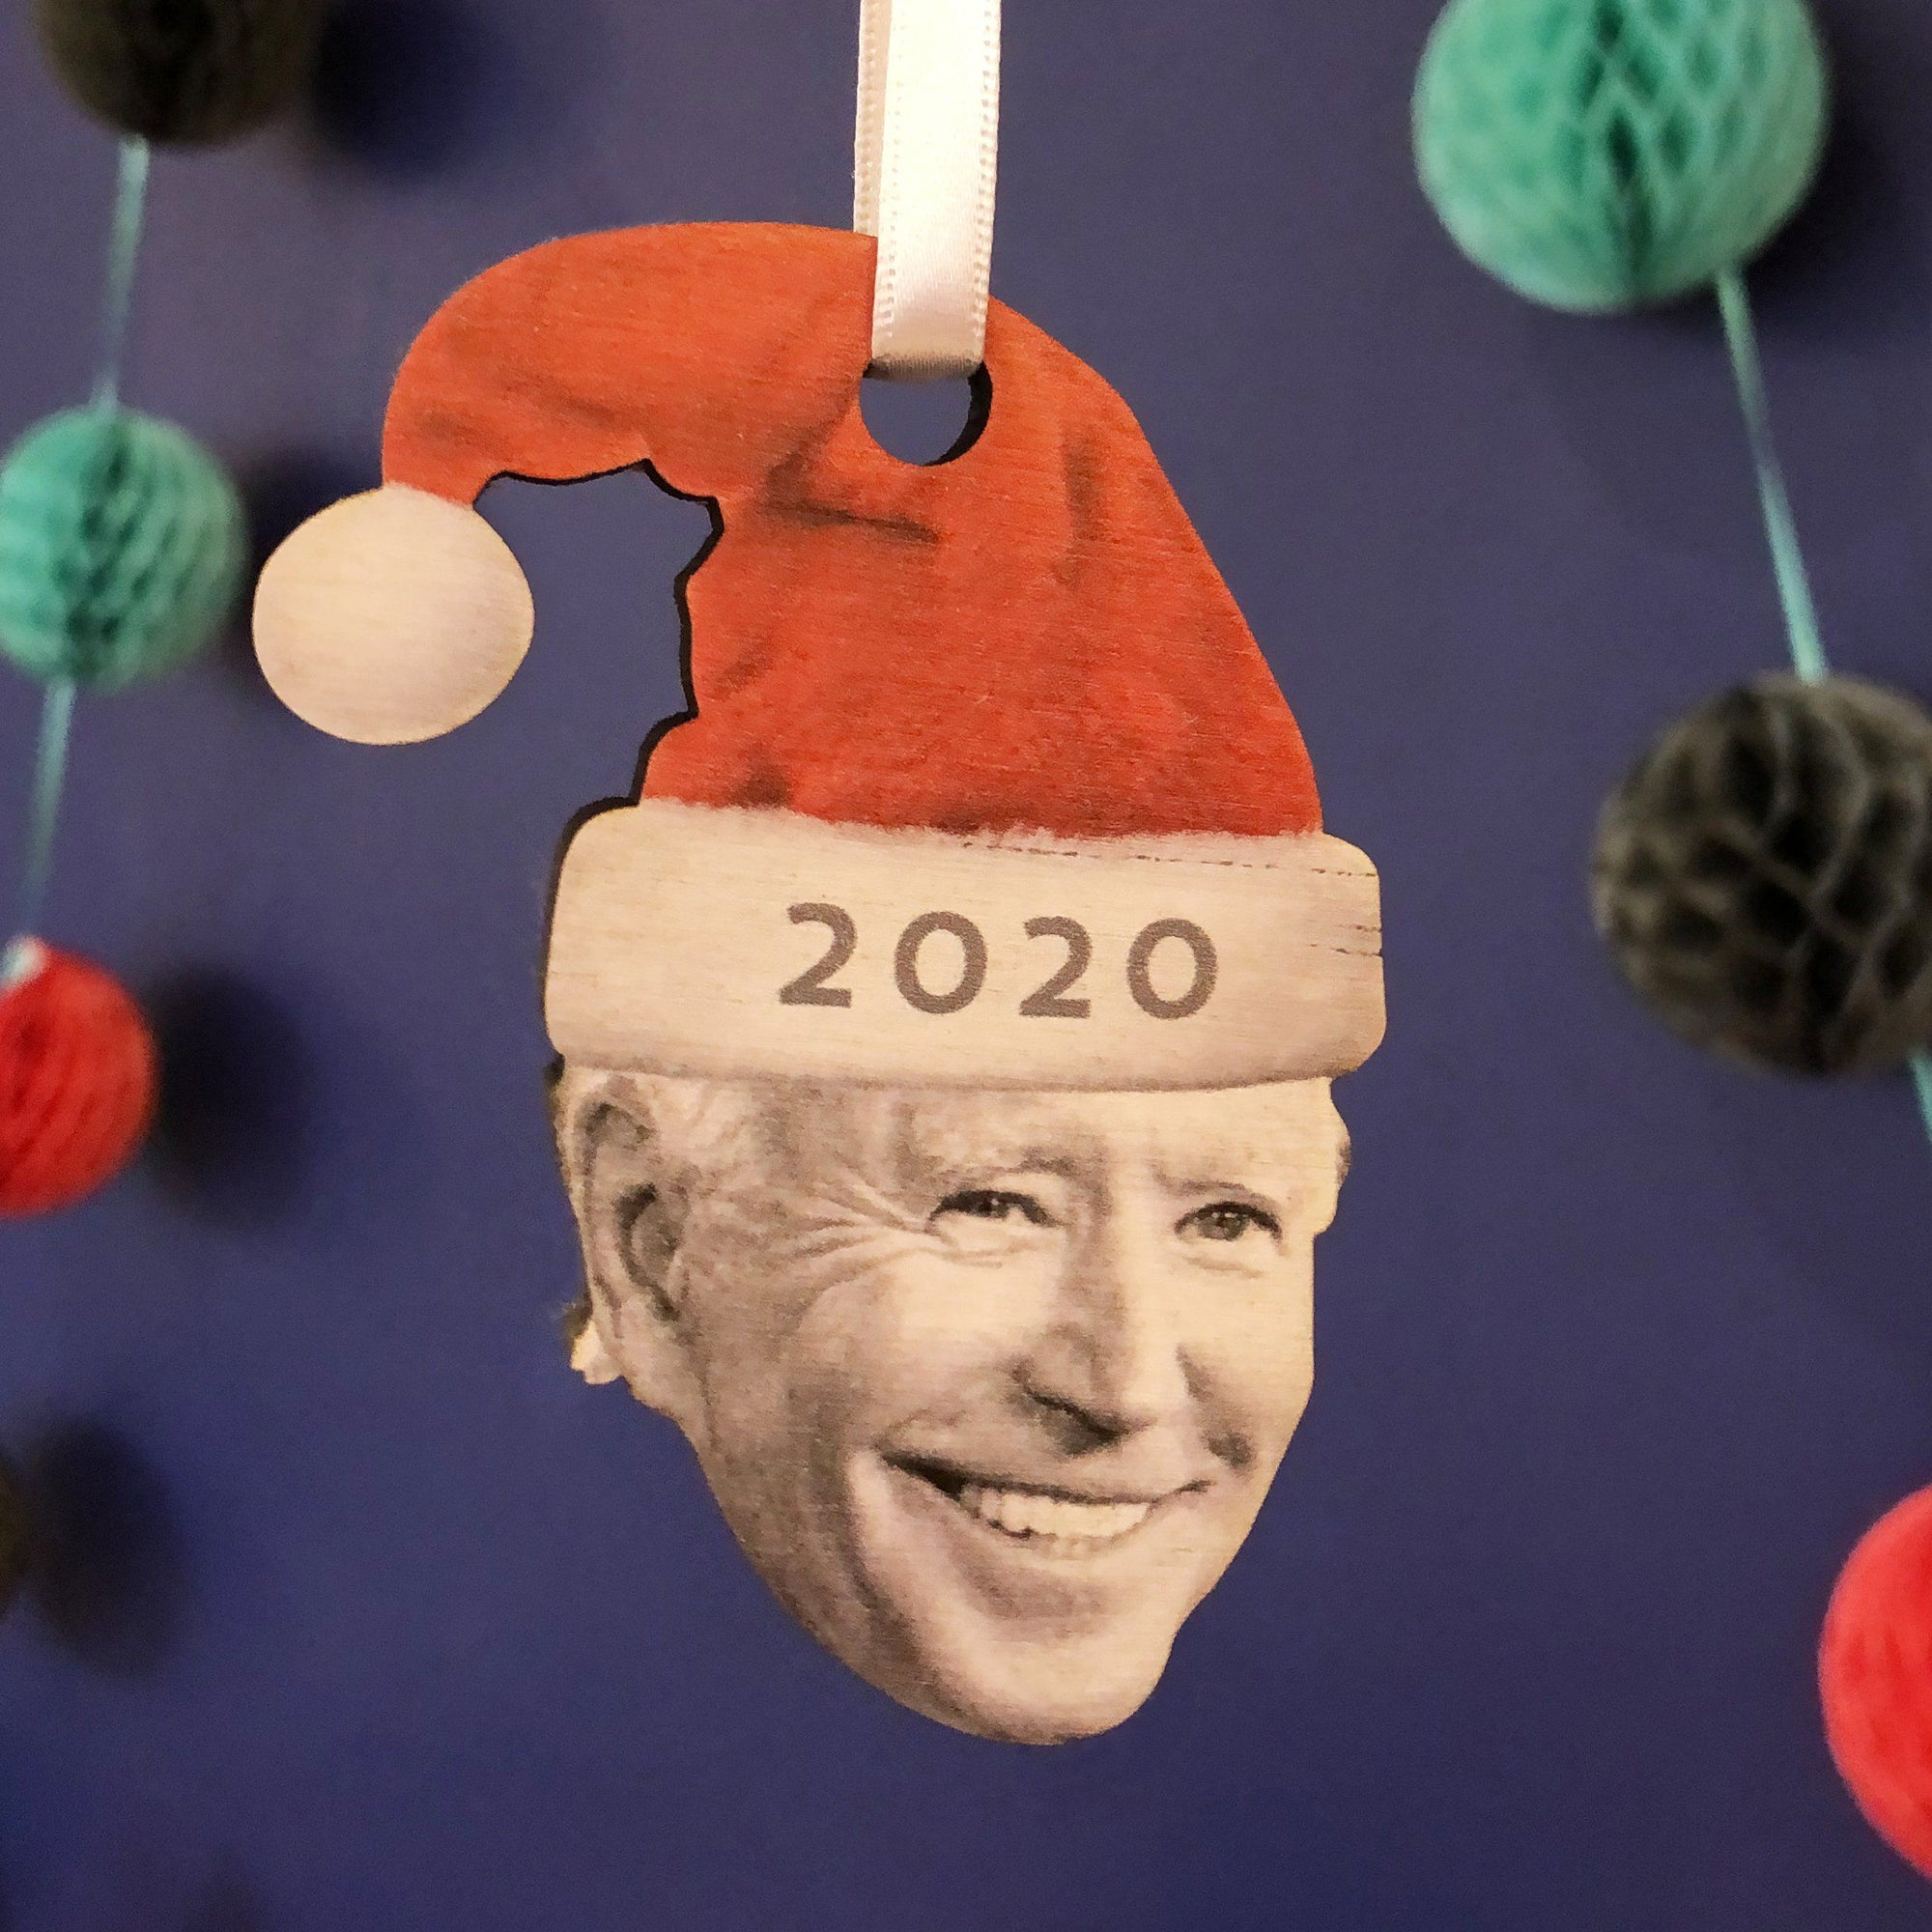 Joe Biden 2020 Christmas Tree Ornament-Betsy Benn